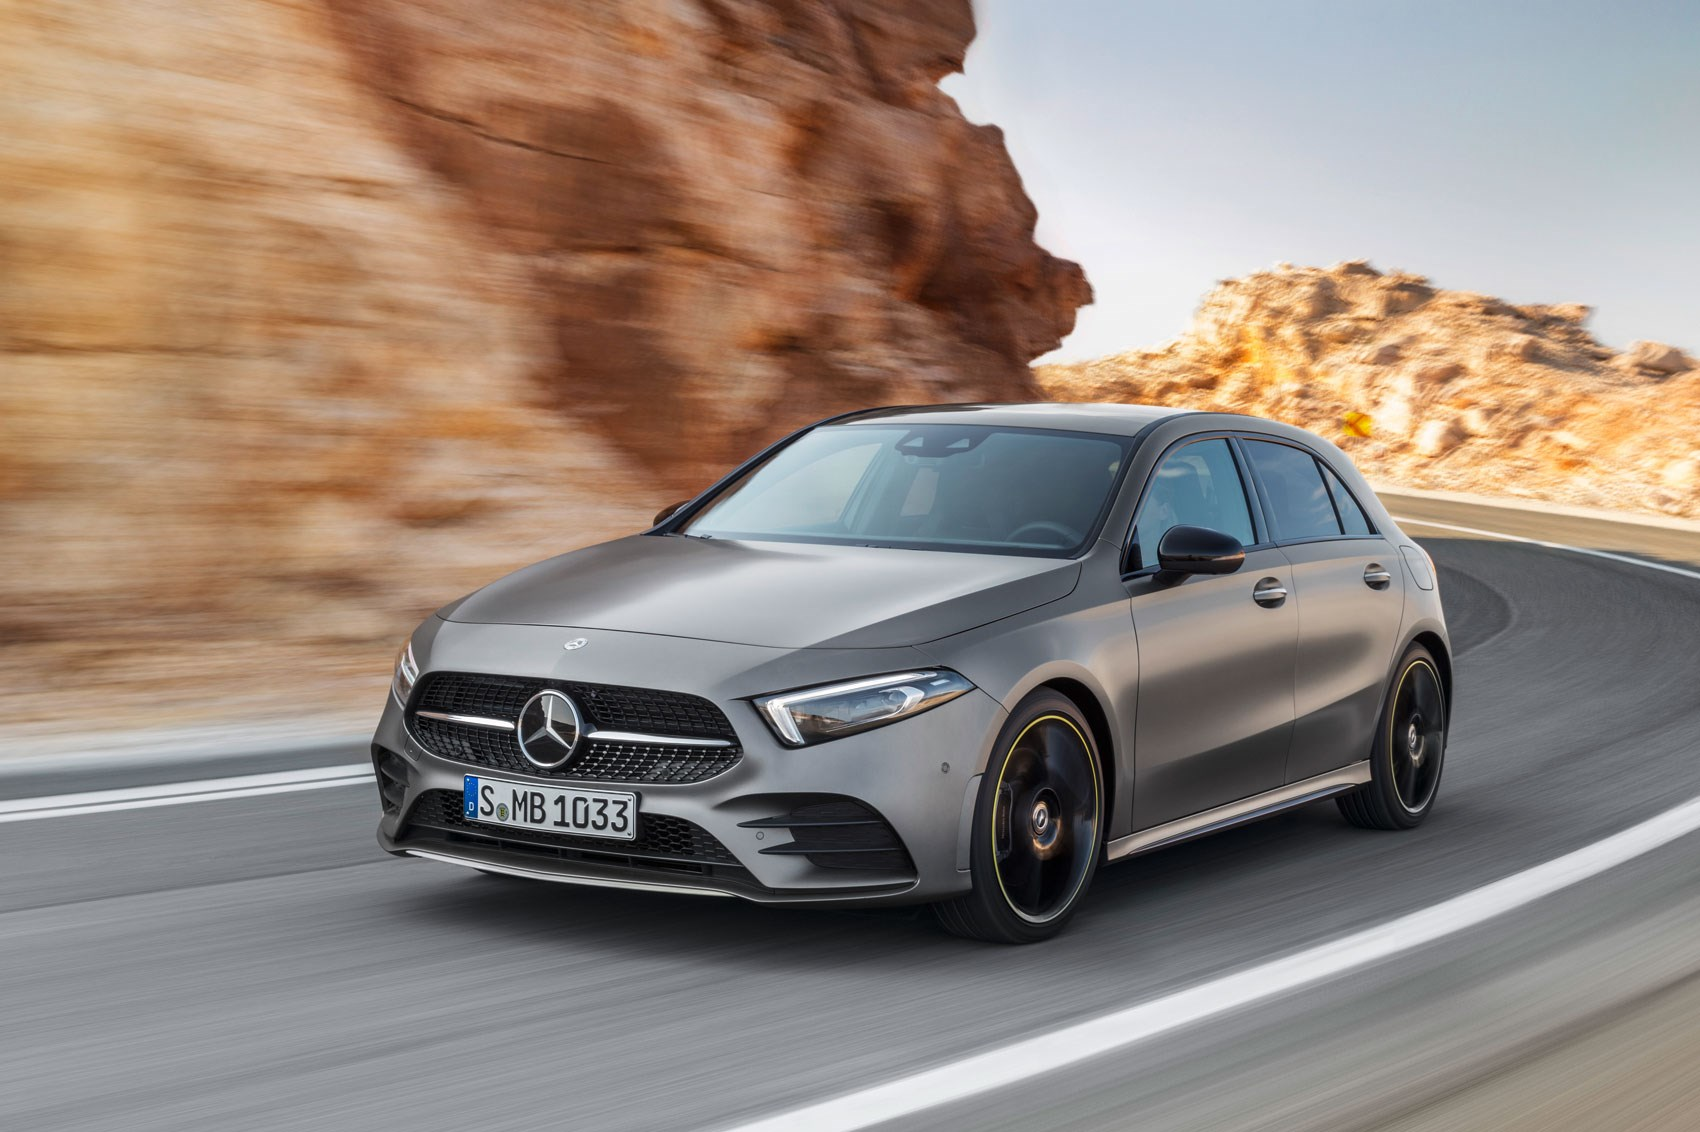 New mercedes a class the car lowdown car magazine for Mercedes benz a class